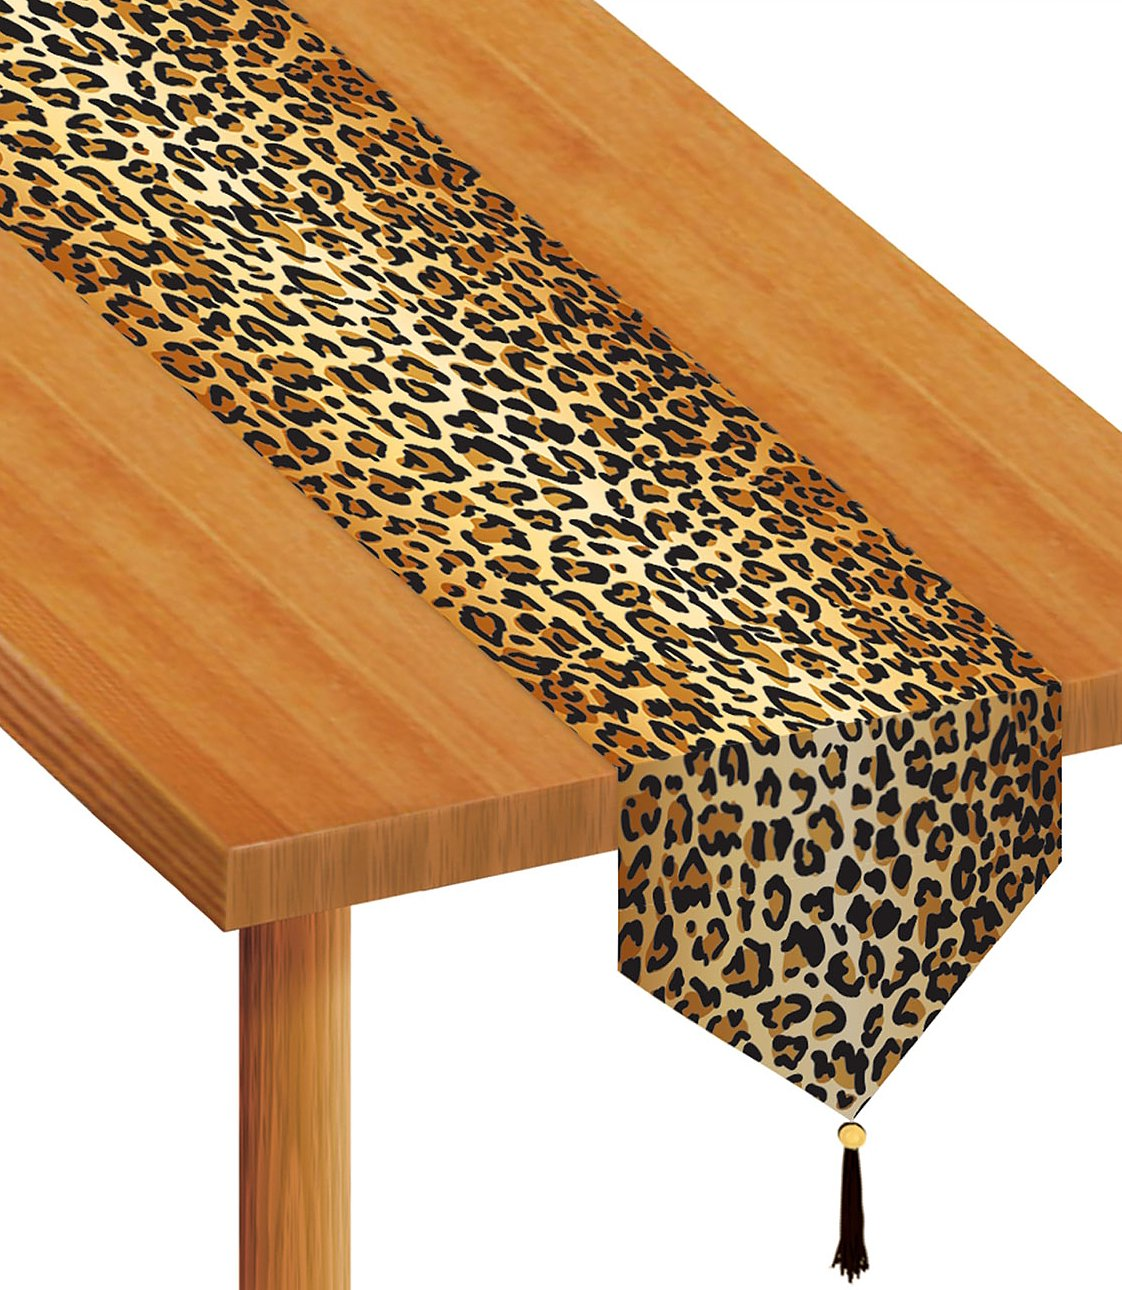 Beistle 57848 Printed Leopard Print Table Runner, 11 Inch By 6 Feet